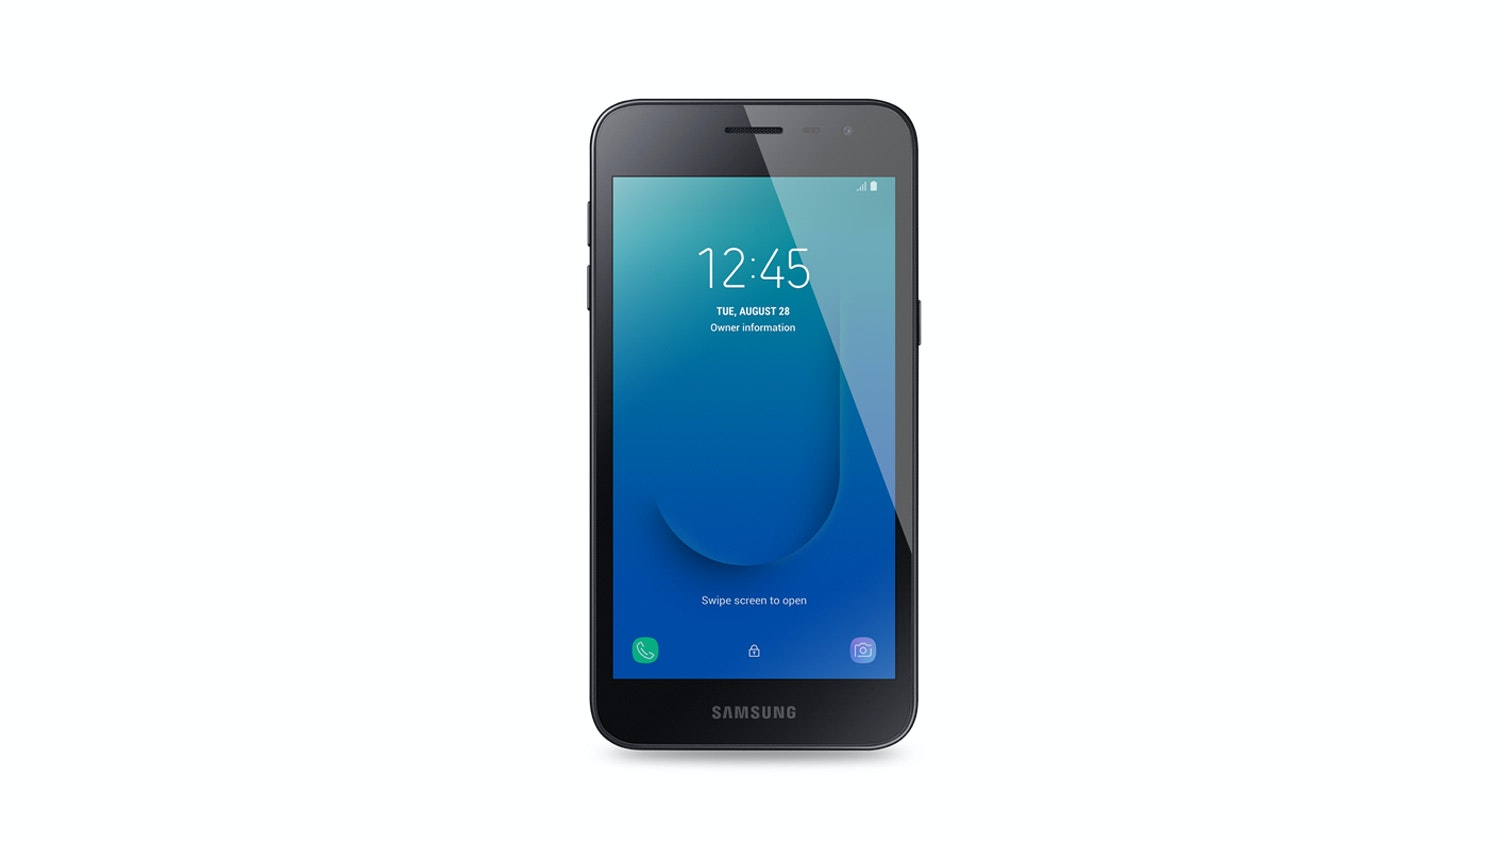 2degrees Samsung Galaxy J2 Core Black Smartphone